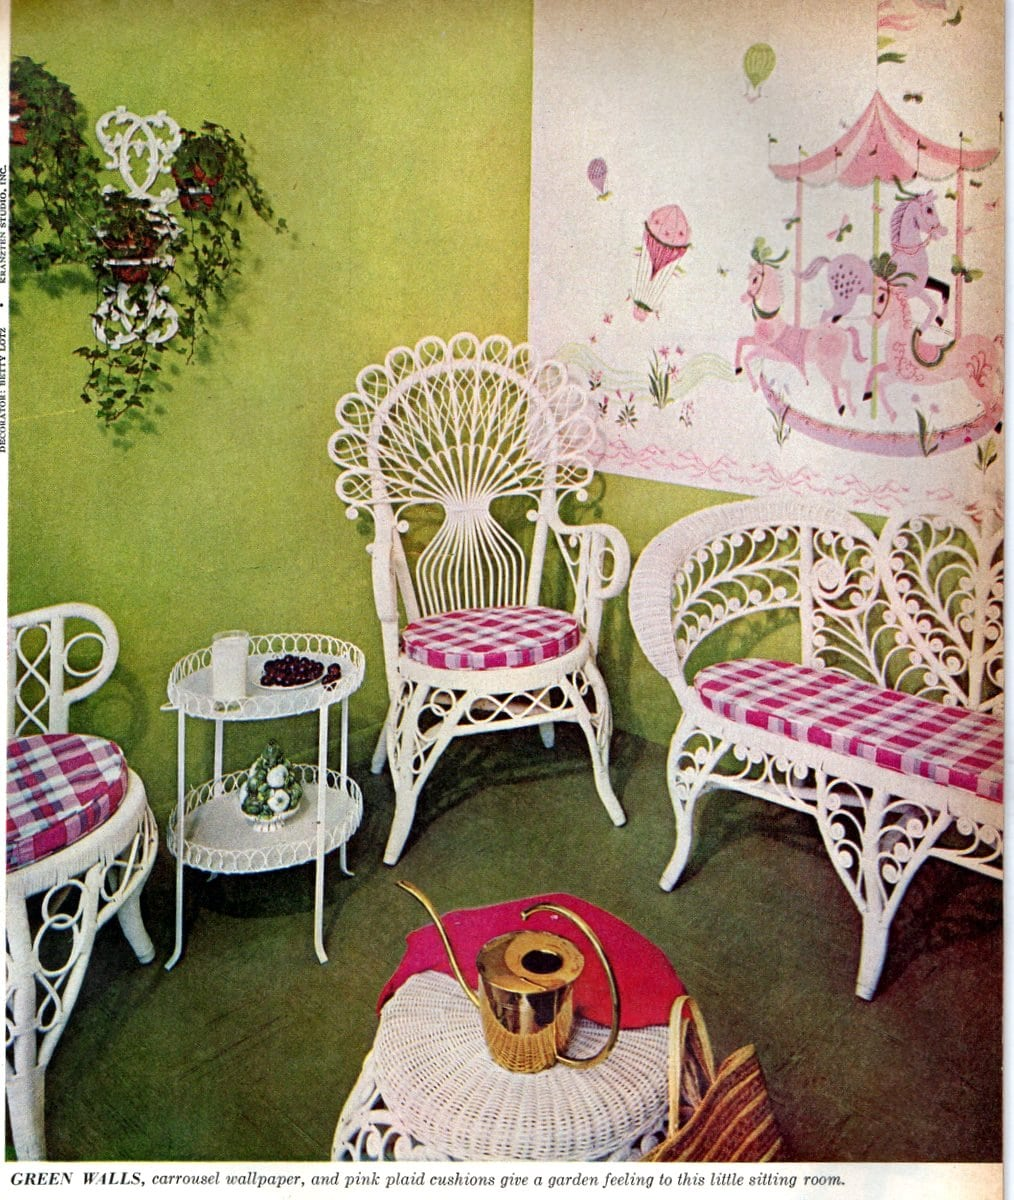 Pink and white wicker bedroom (1959)